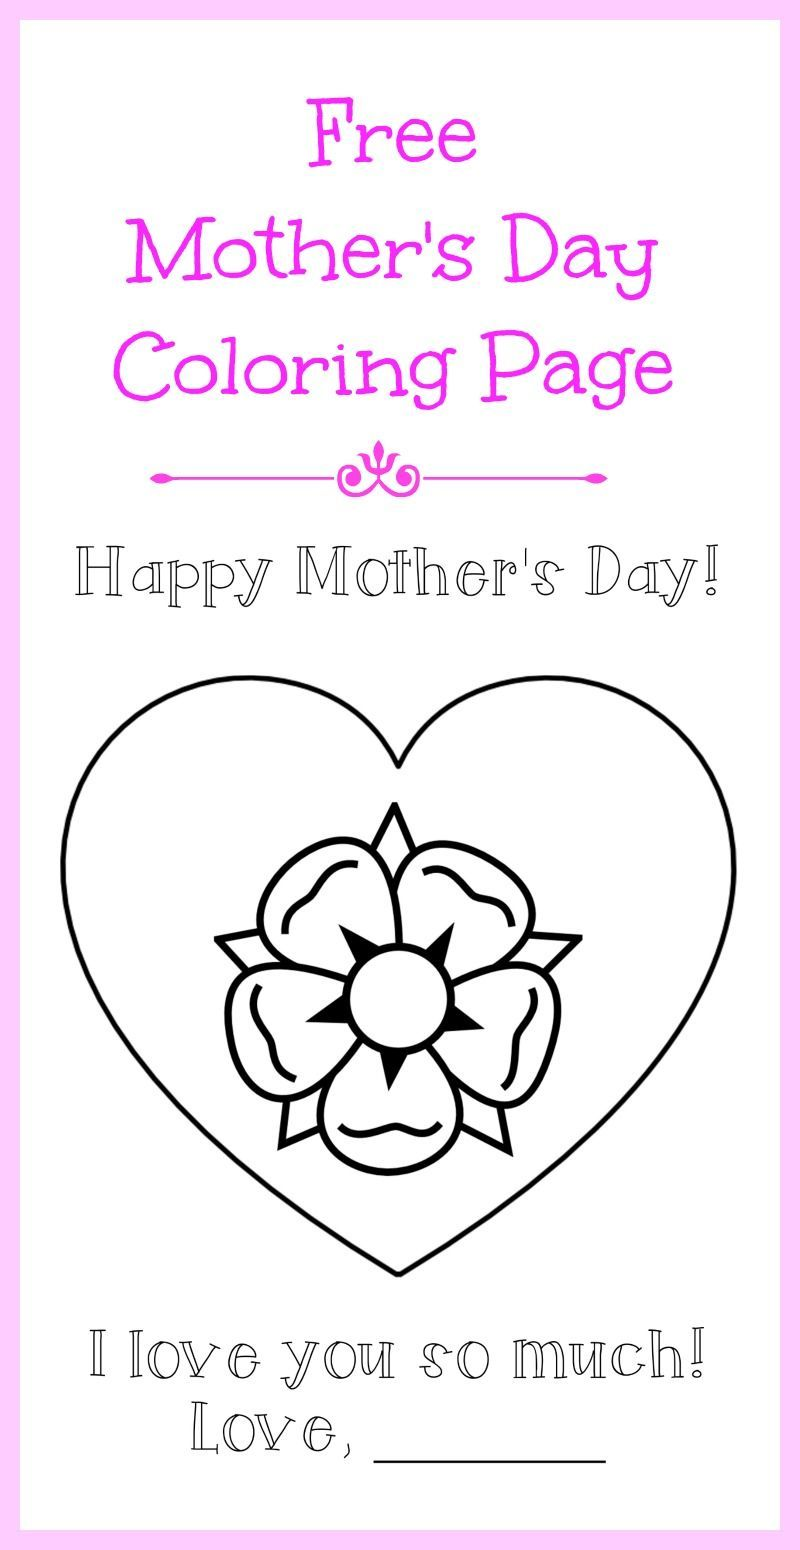 Mother's Day coloring page FREE printable! Download and